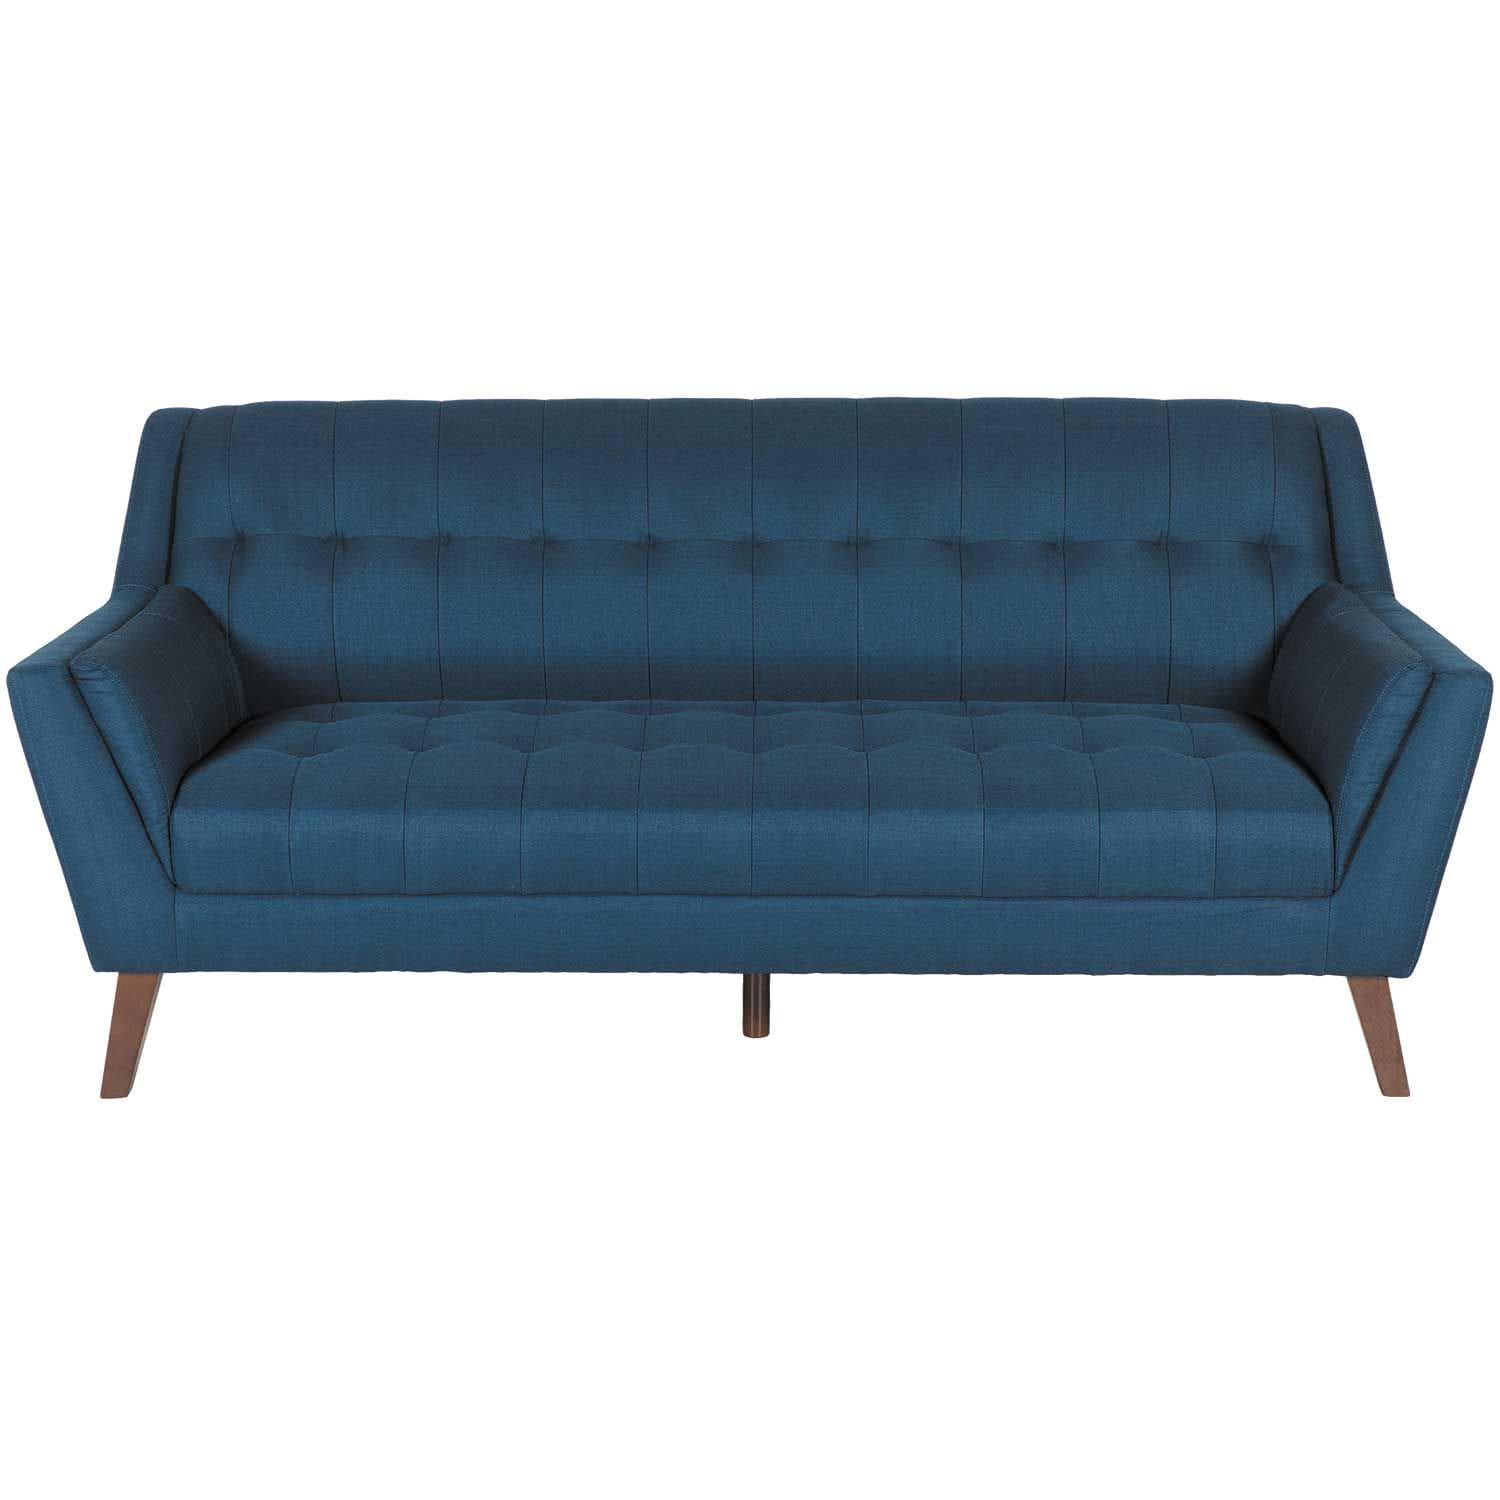 Binetti Retro Navy Sofa